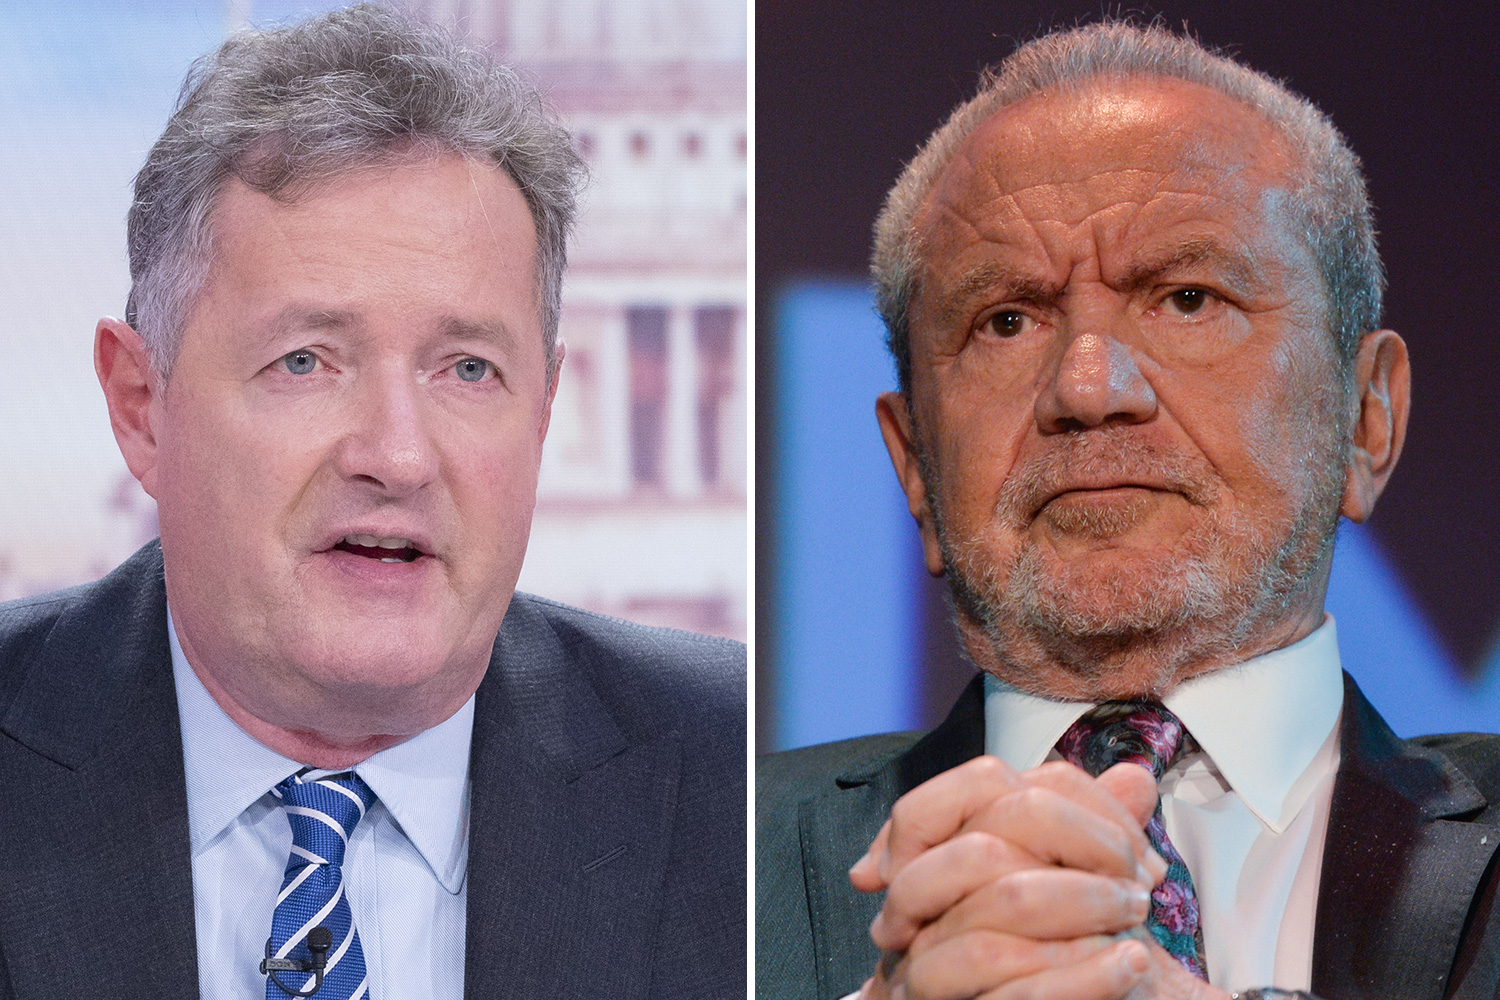 Lord Sugar reignites row with Piers Morgan as he questions how GMB host can get coronavirus test faster than - The Sun